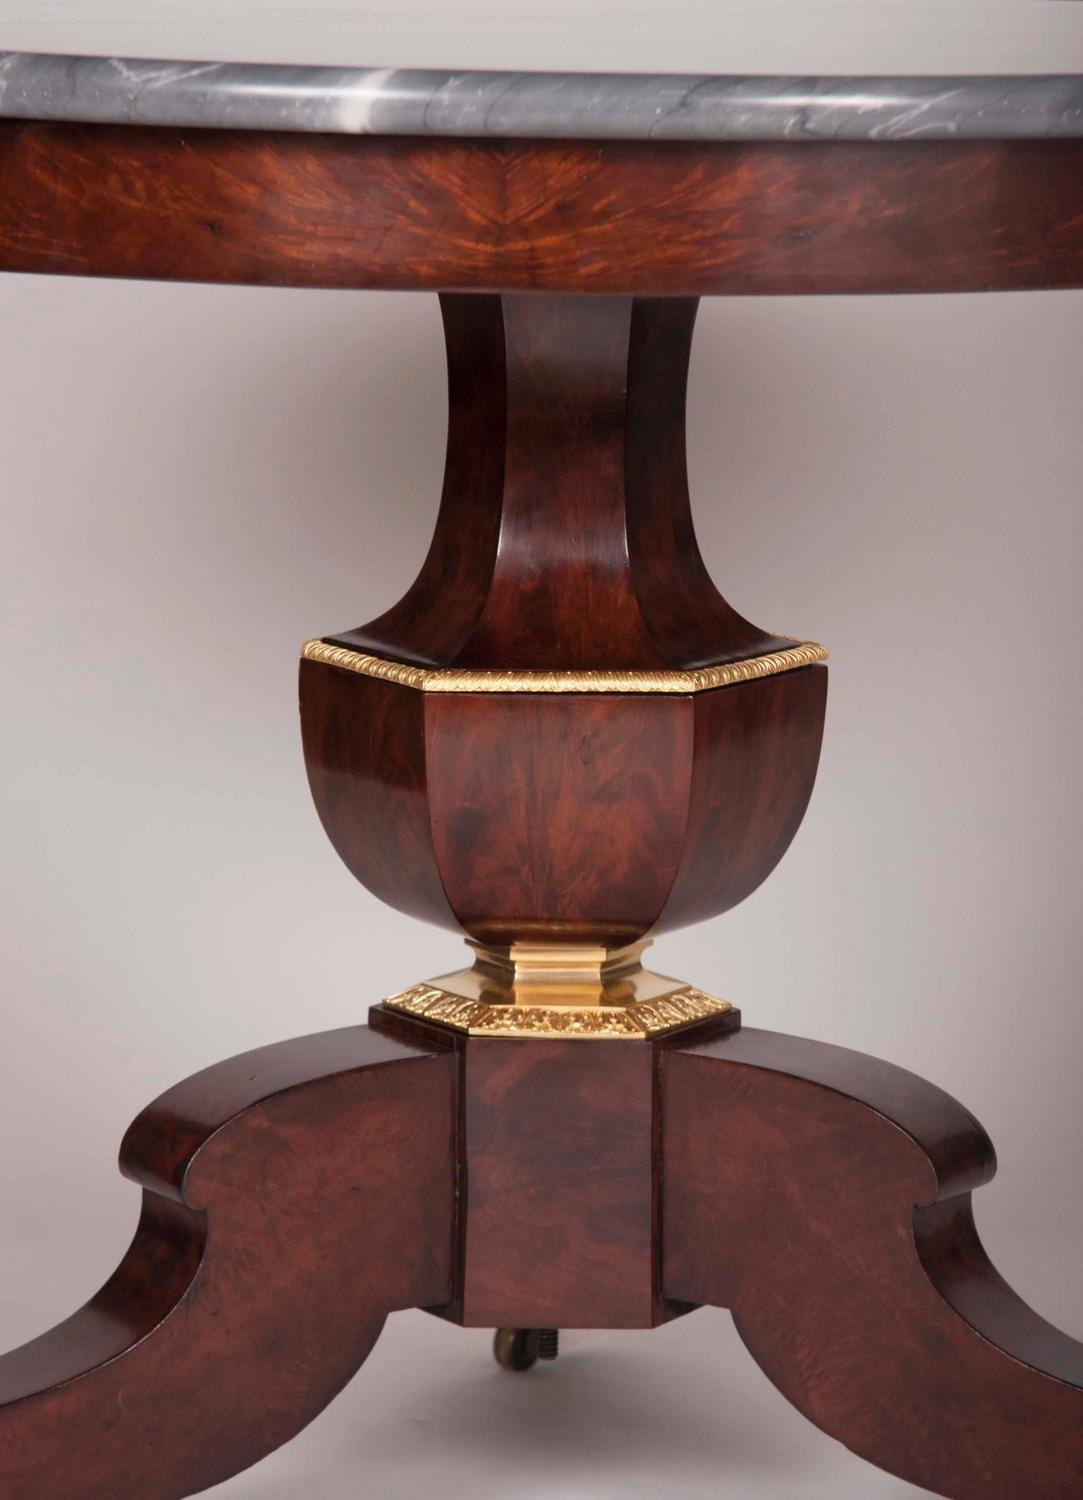 Restoration Period Mahogany Center Table For Sale At 1stdibs